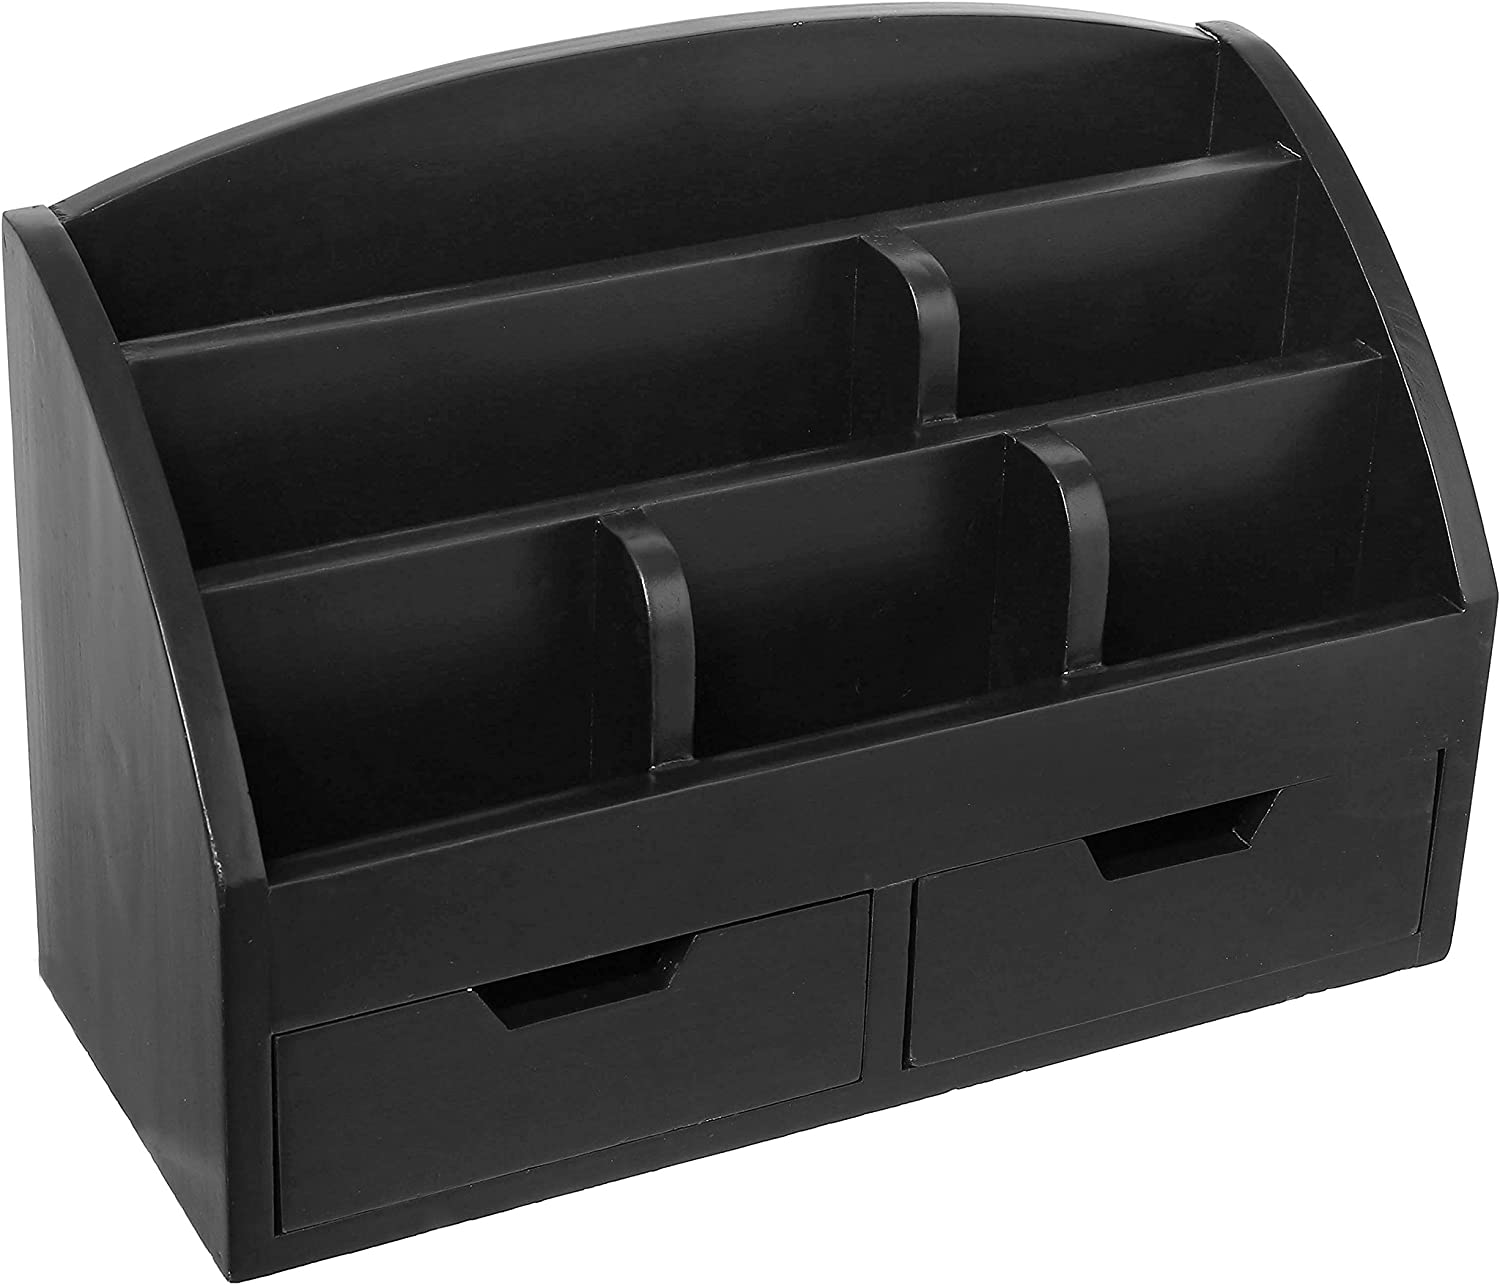 Modern Black Wood 6-Compartment Desktop Organizer, 2-Drawer Office Supplies Desk Caddy